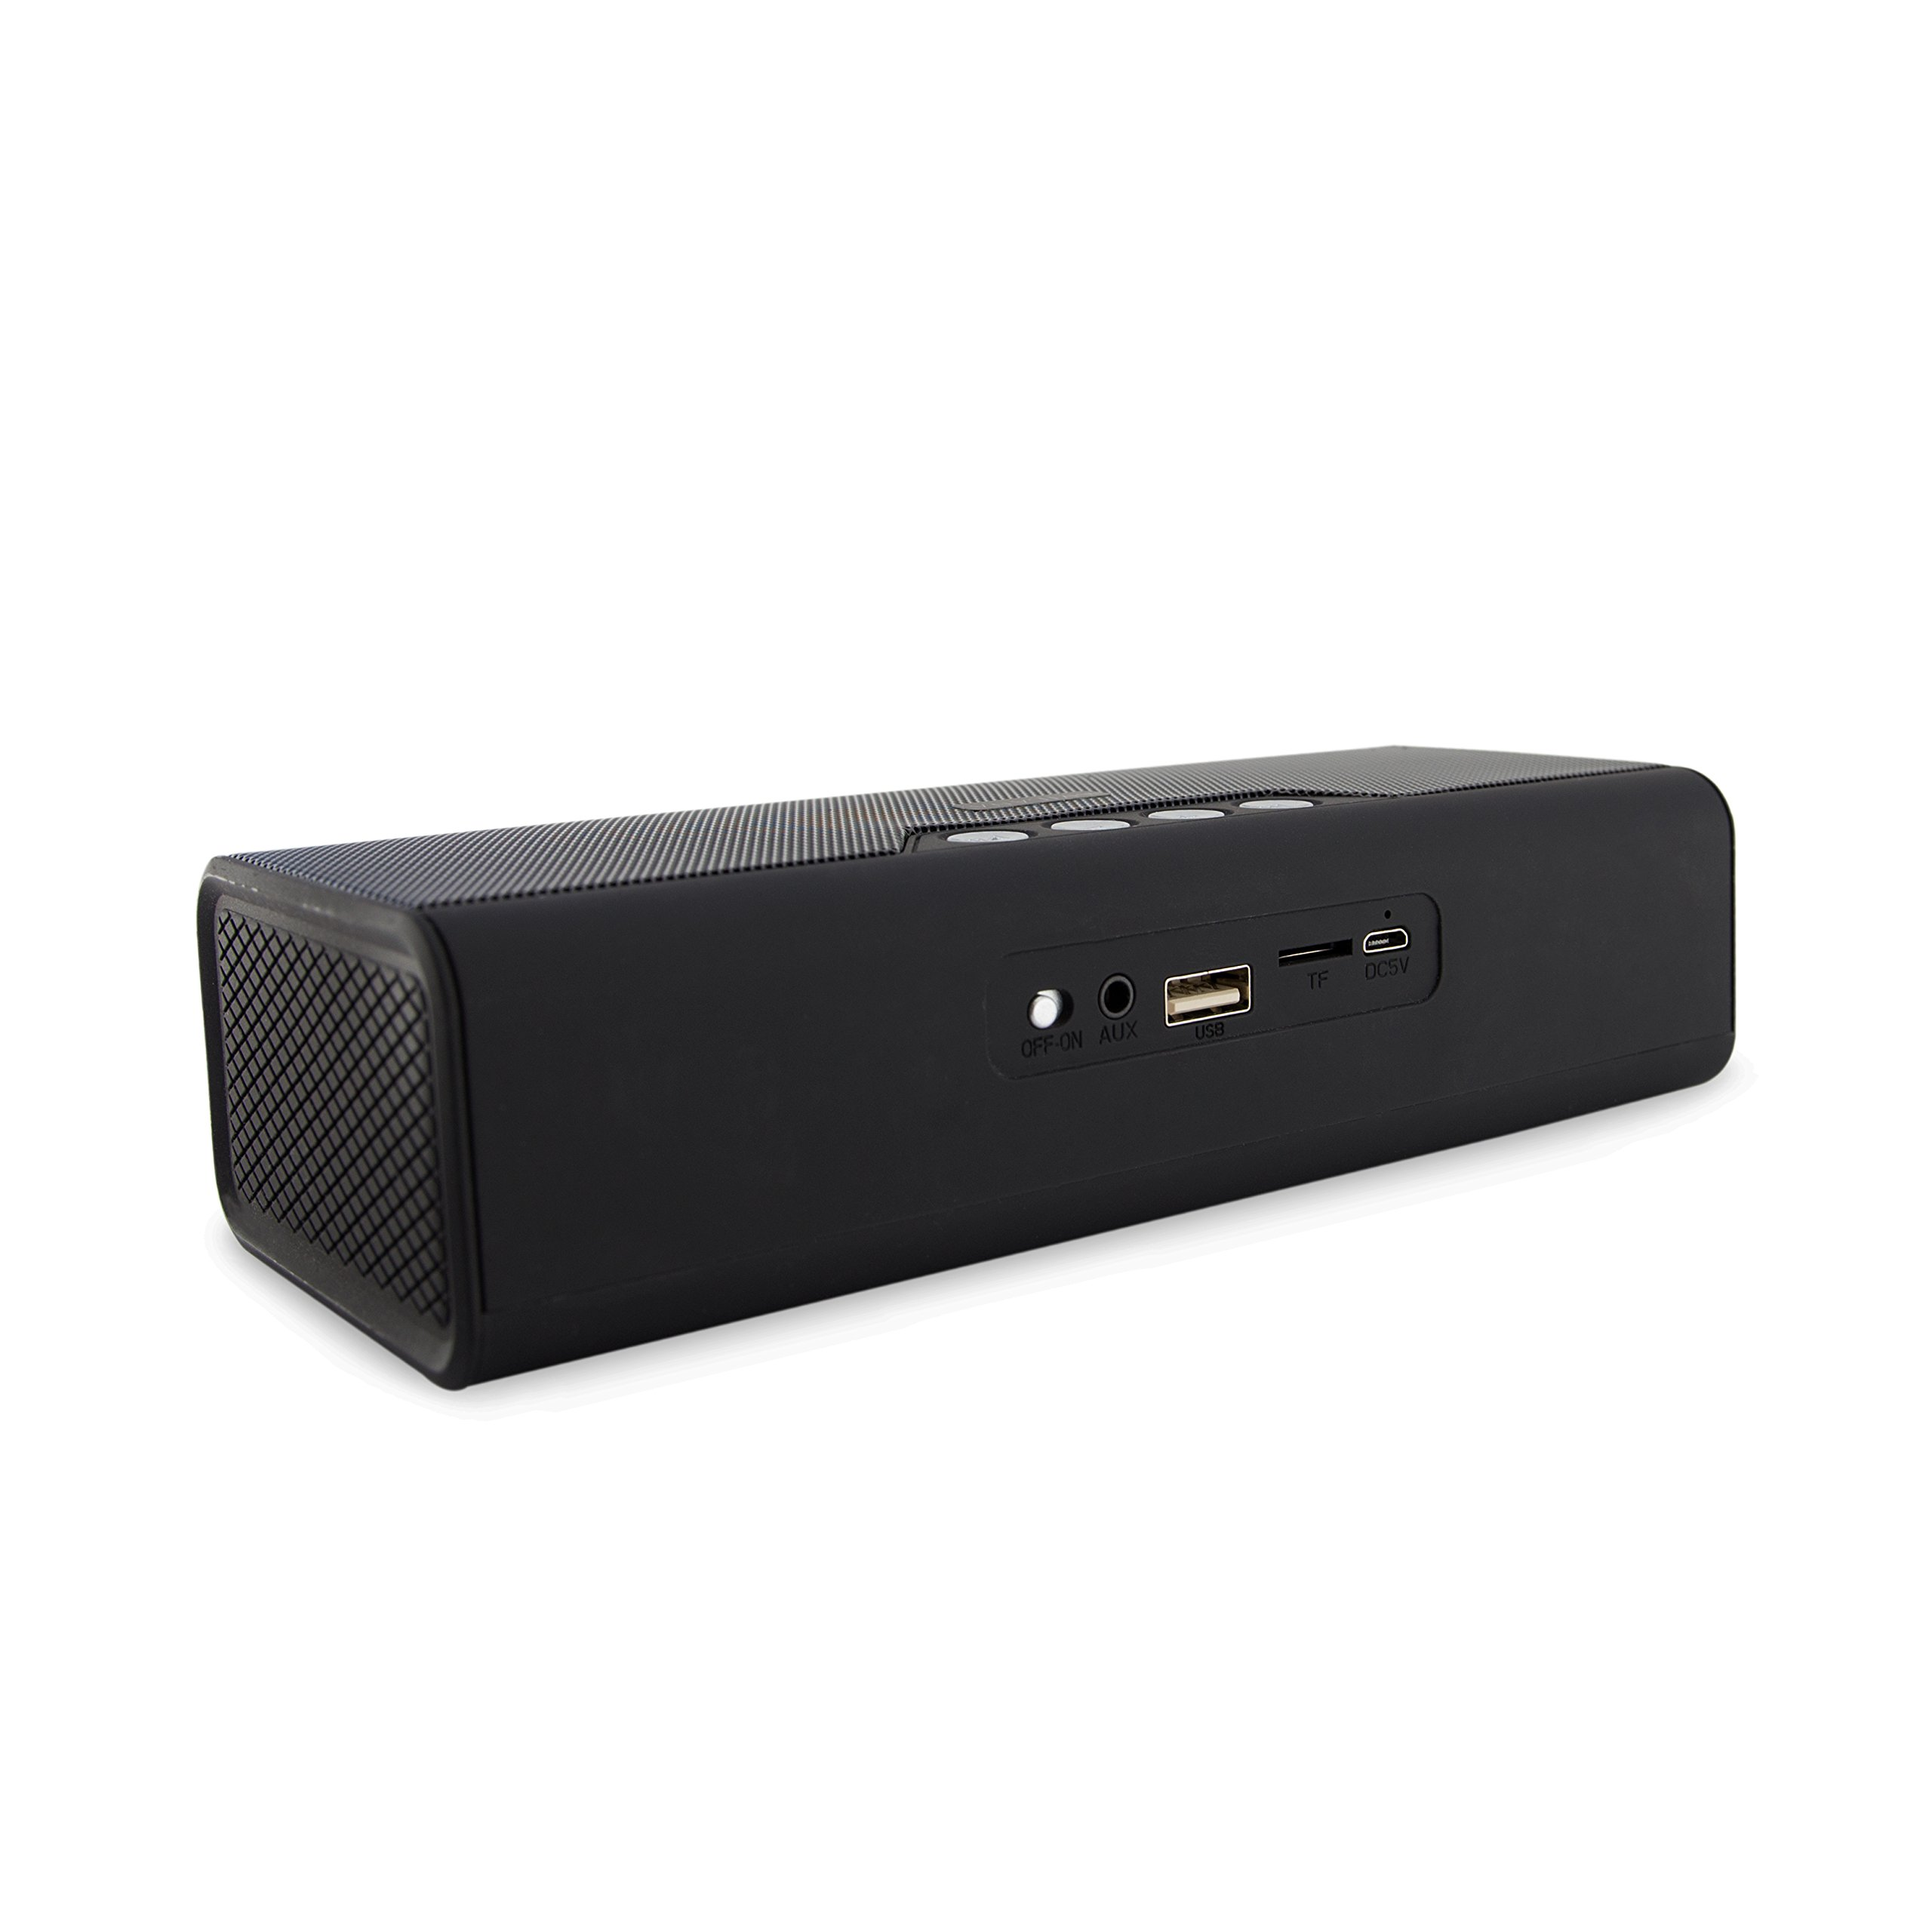 Portable Bluetooth Speaker - Wireless Travel Speakers and Phone Charger for iPhone, iPod, and Android Phones - With Aux Input, Deep Bass, and Stereo Sound by Avilana by Avilana (Image #3)